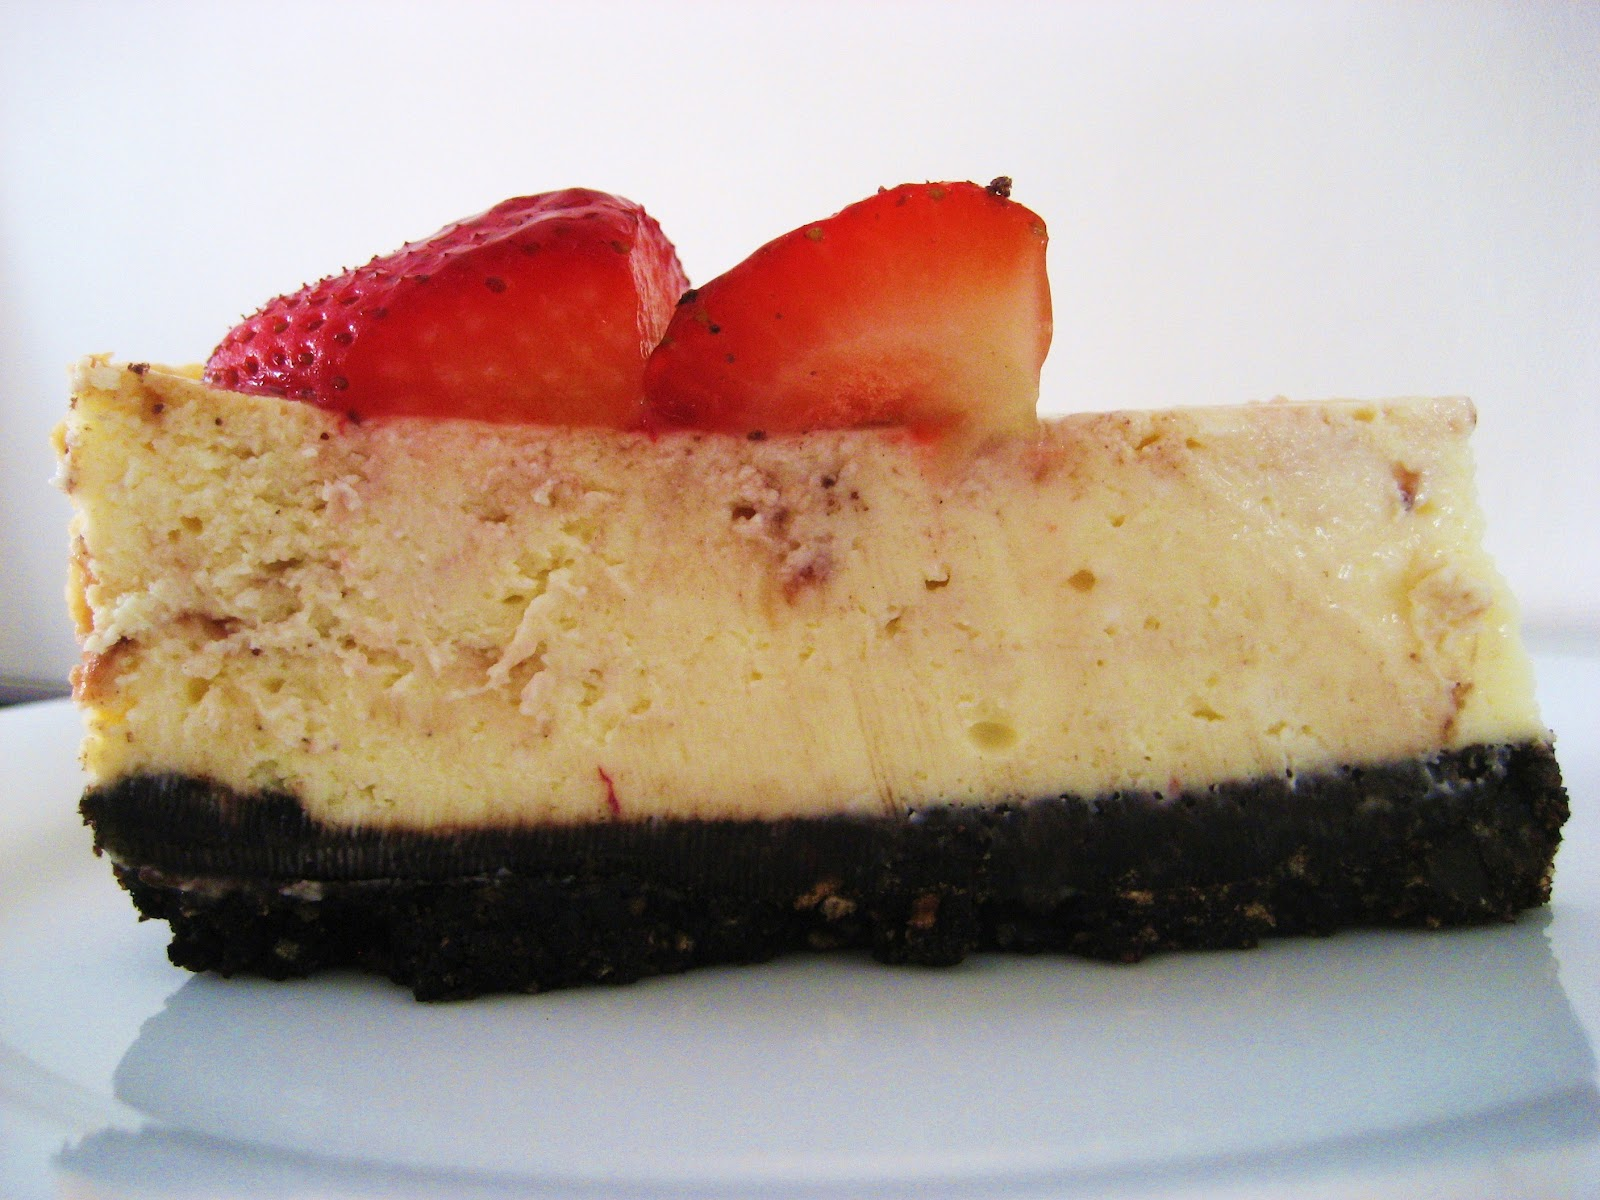 Treat a Week Recipes: White Chocolate Strawberry Cheesecake